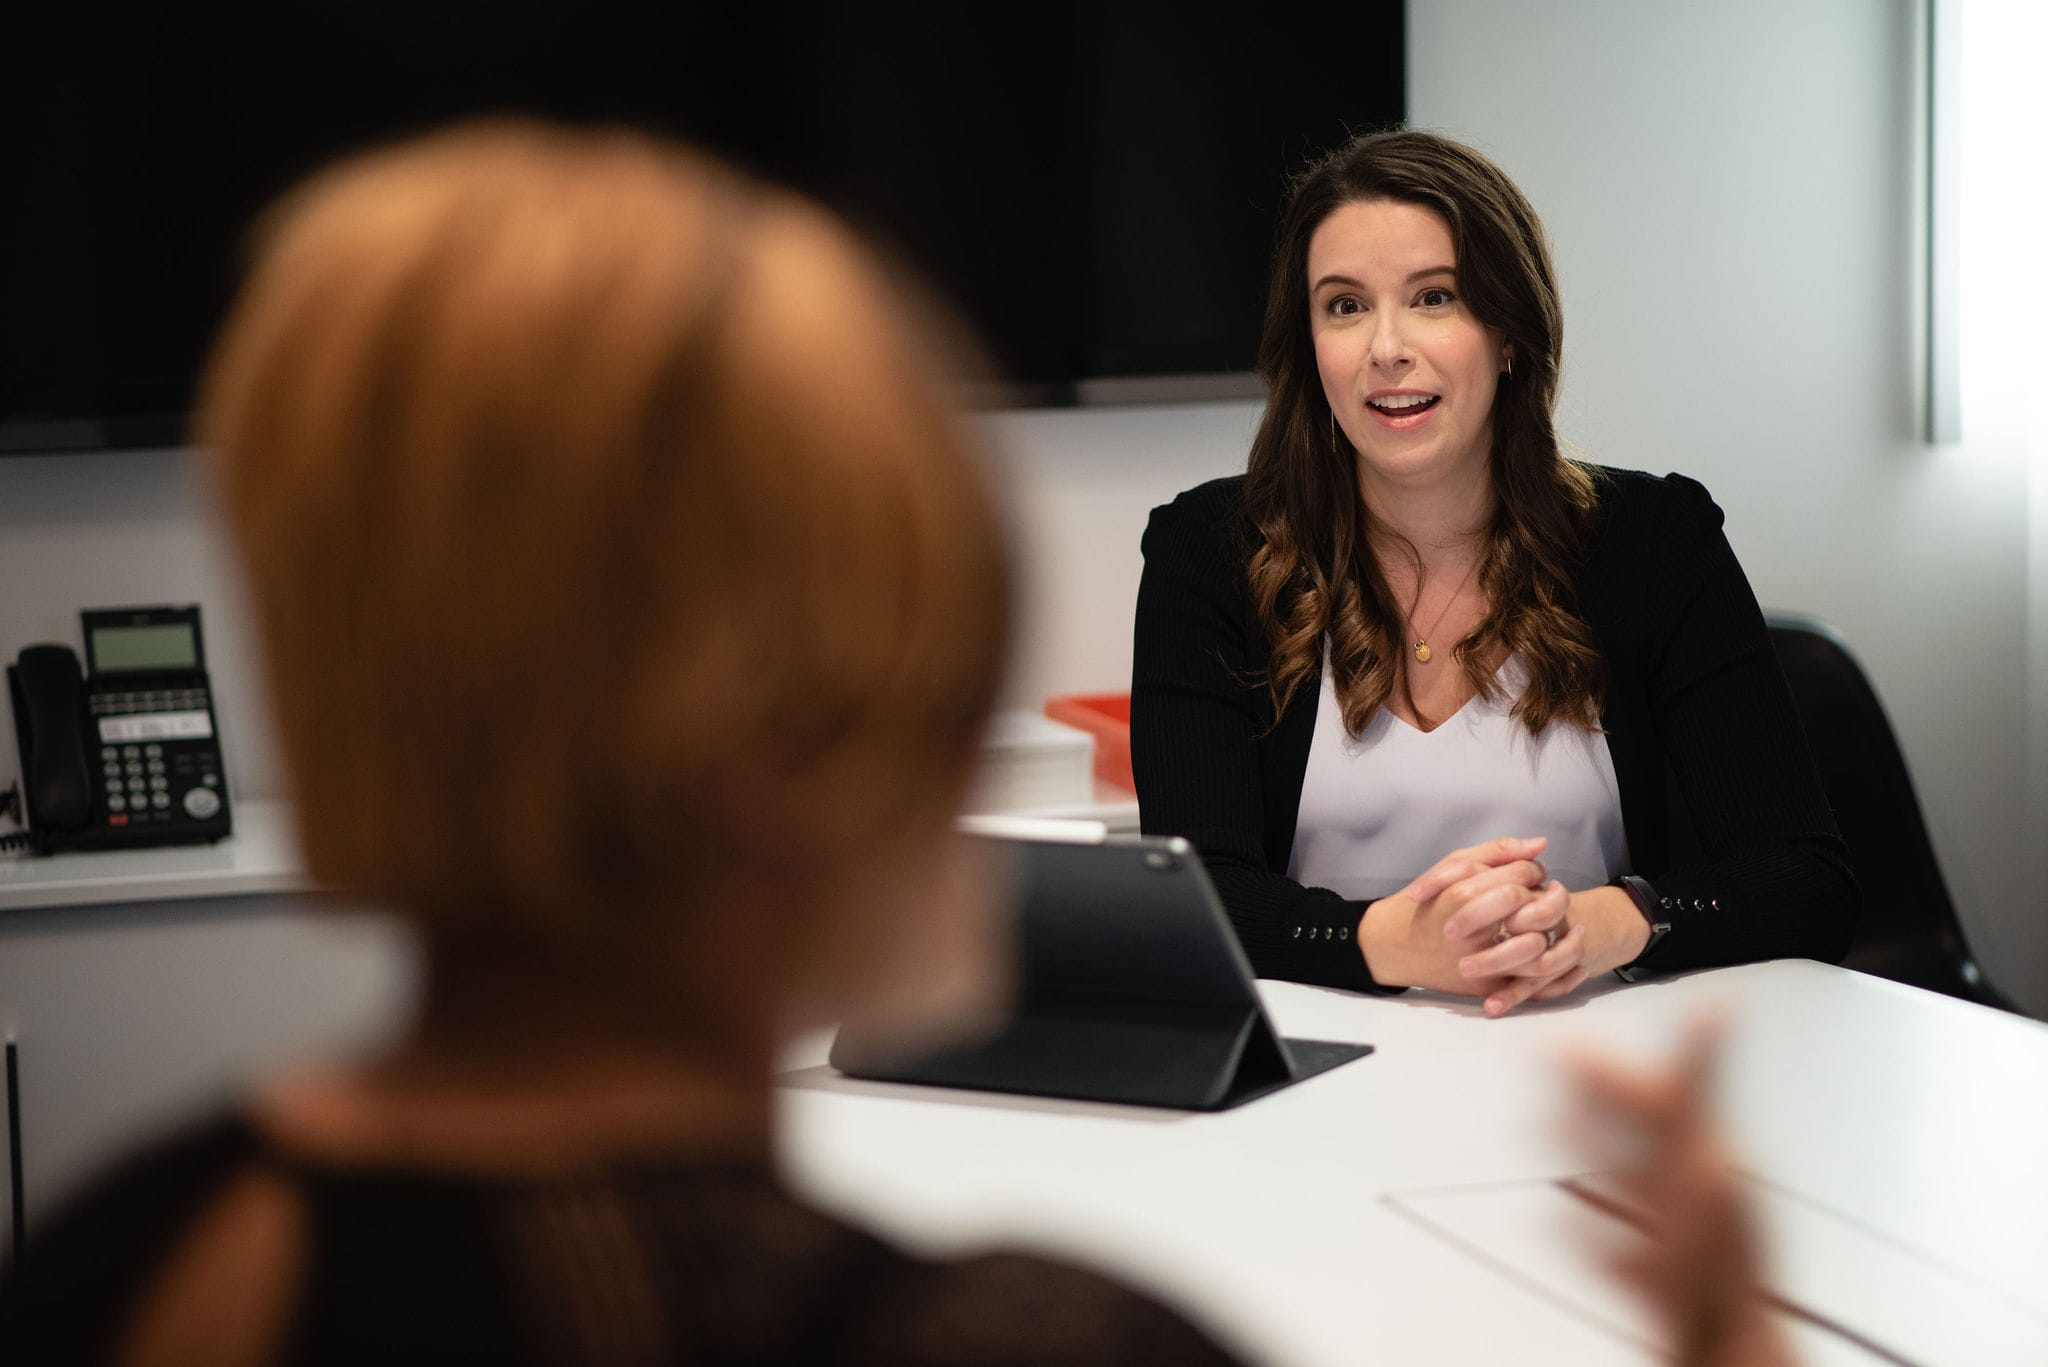 Mallory McGrath talking with a client in an office boardroom